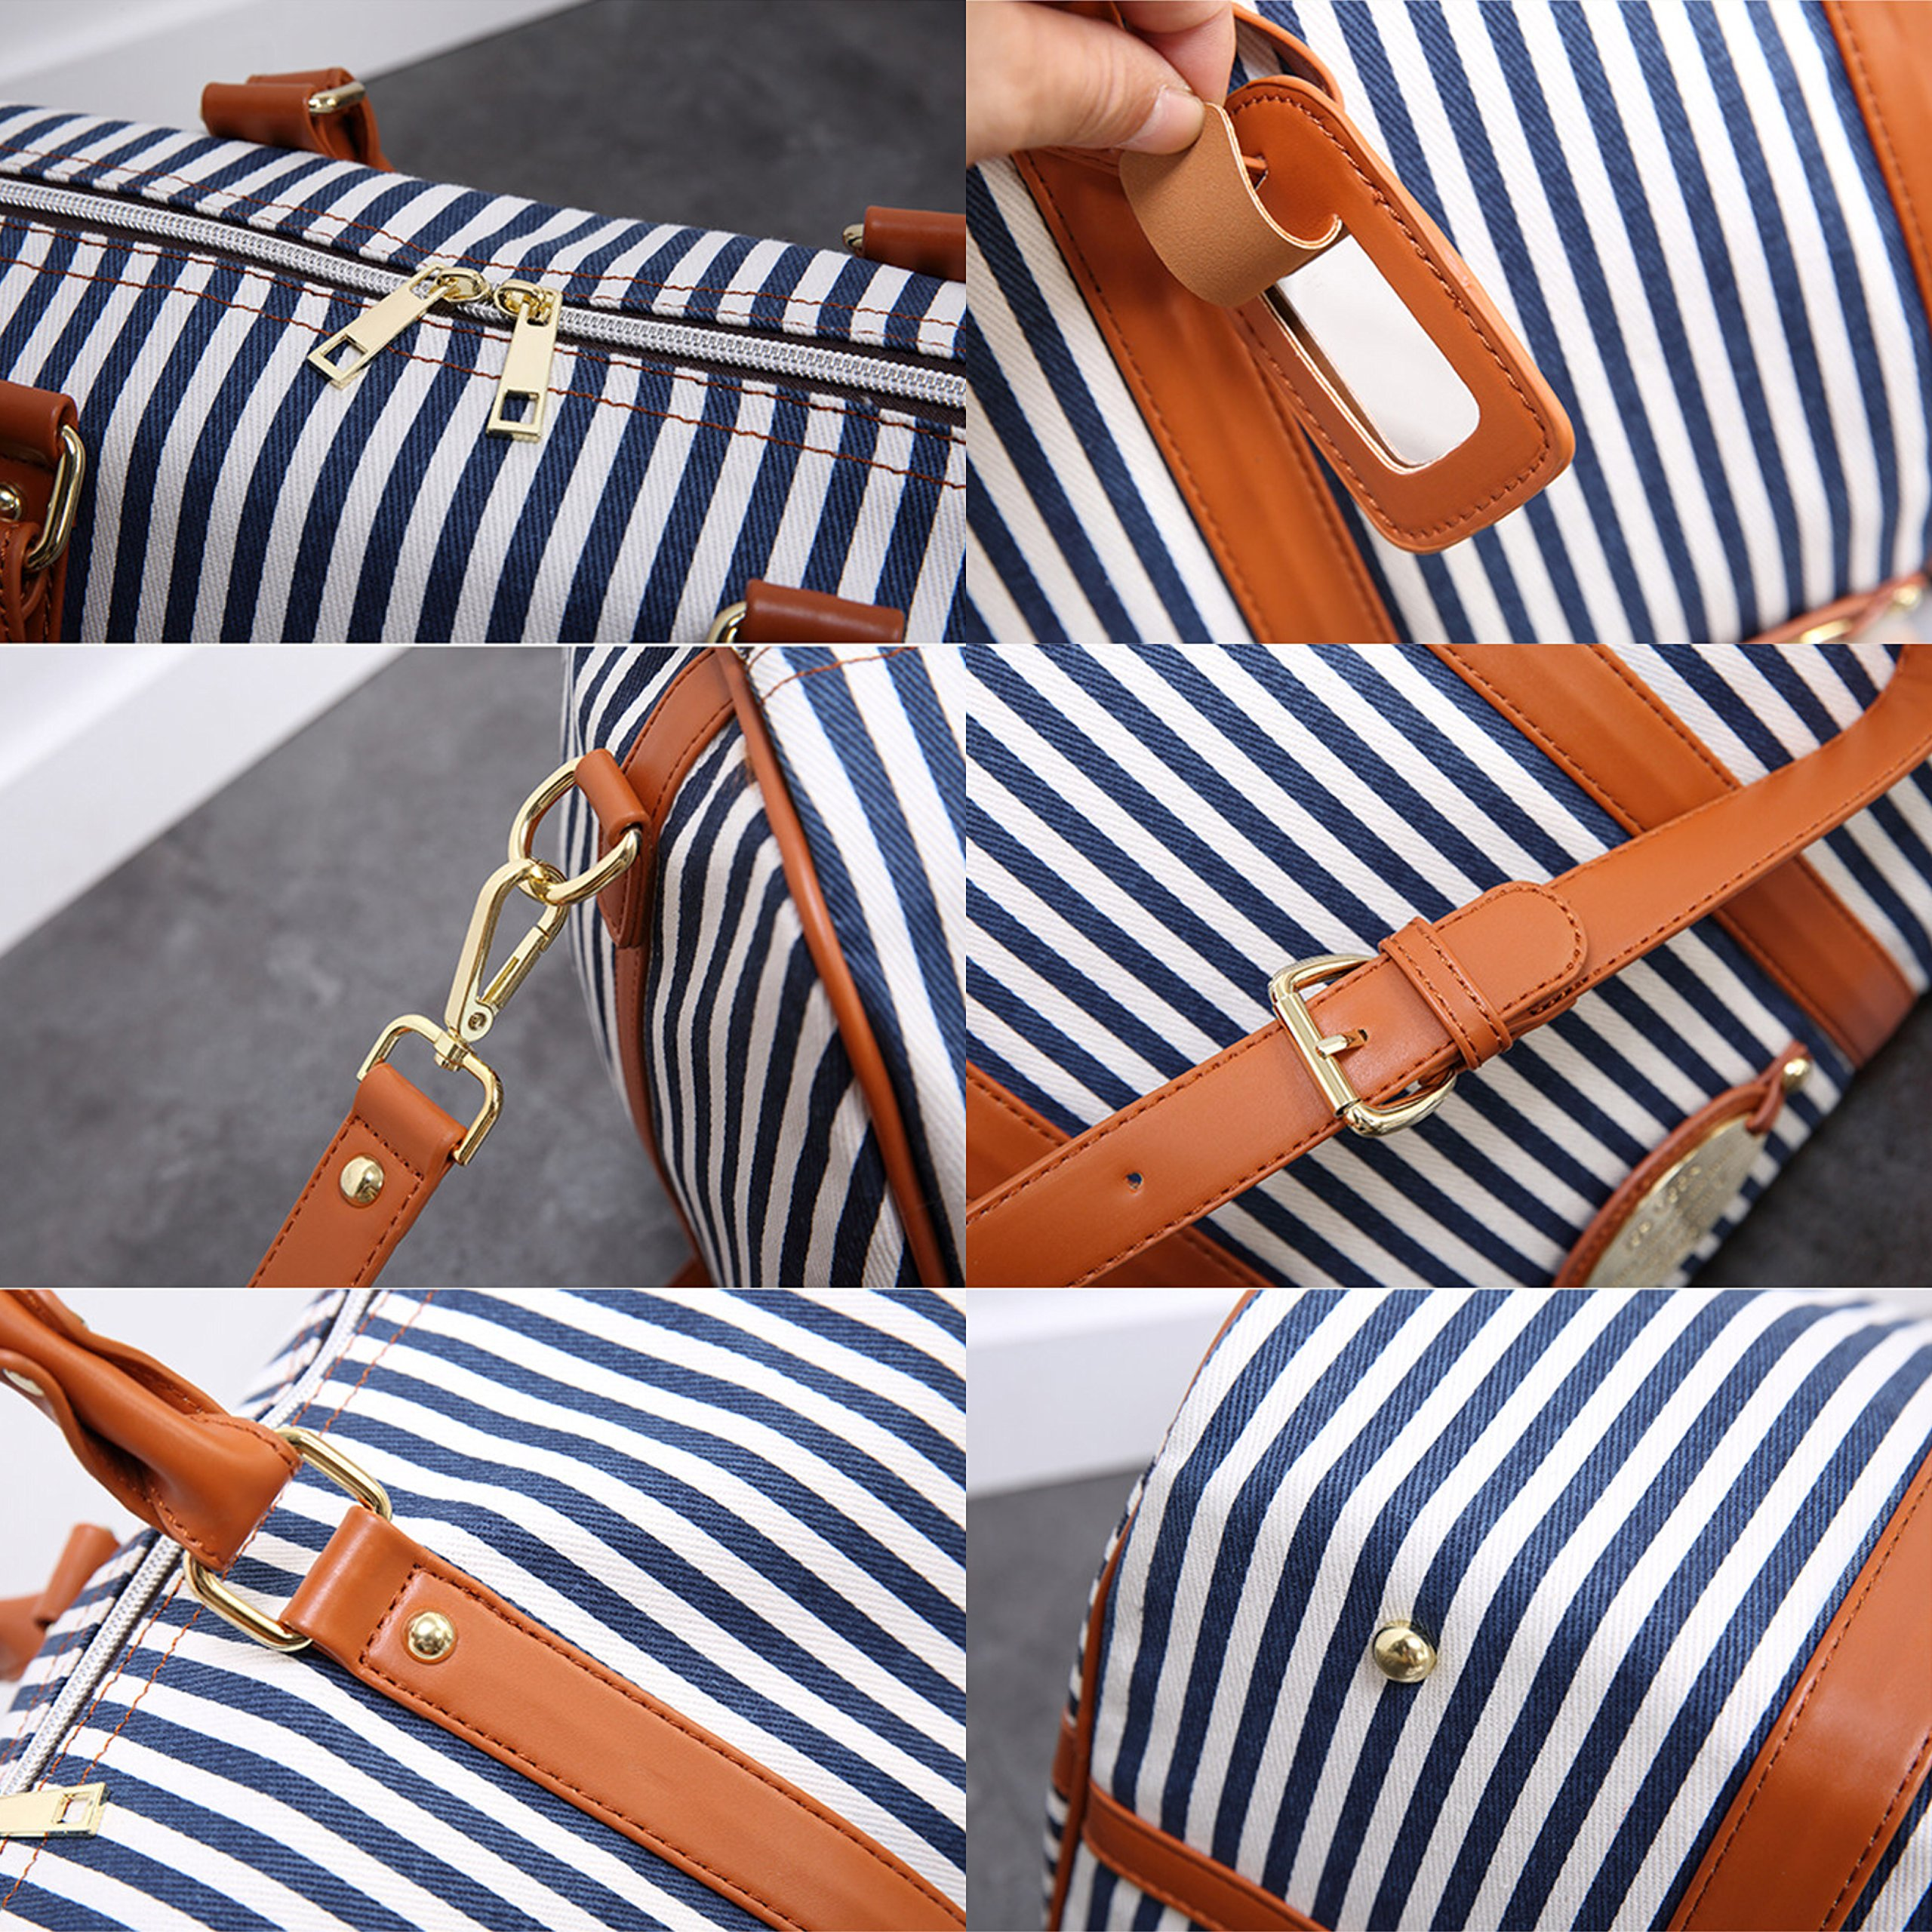 MooYang Women Fashionable Weekender Travel Duffle Tote Bag. Canvas Striped Bag for Overnight Trip,Work,College,Gym,Vacations. by MooYang (Image #5)